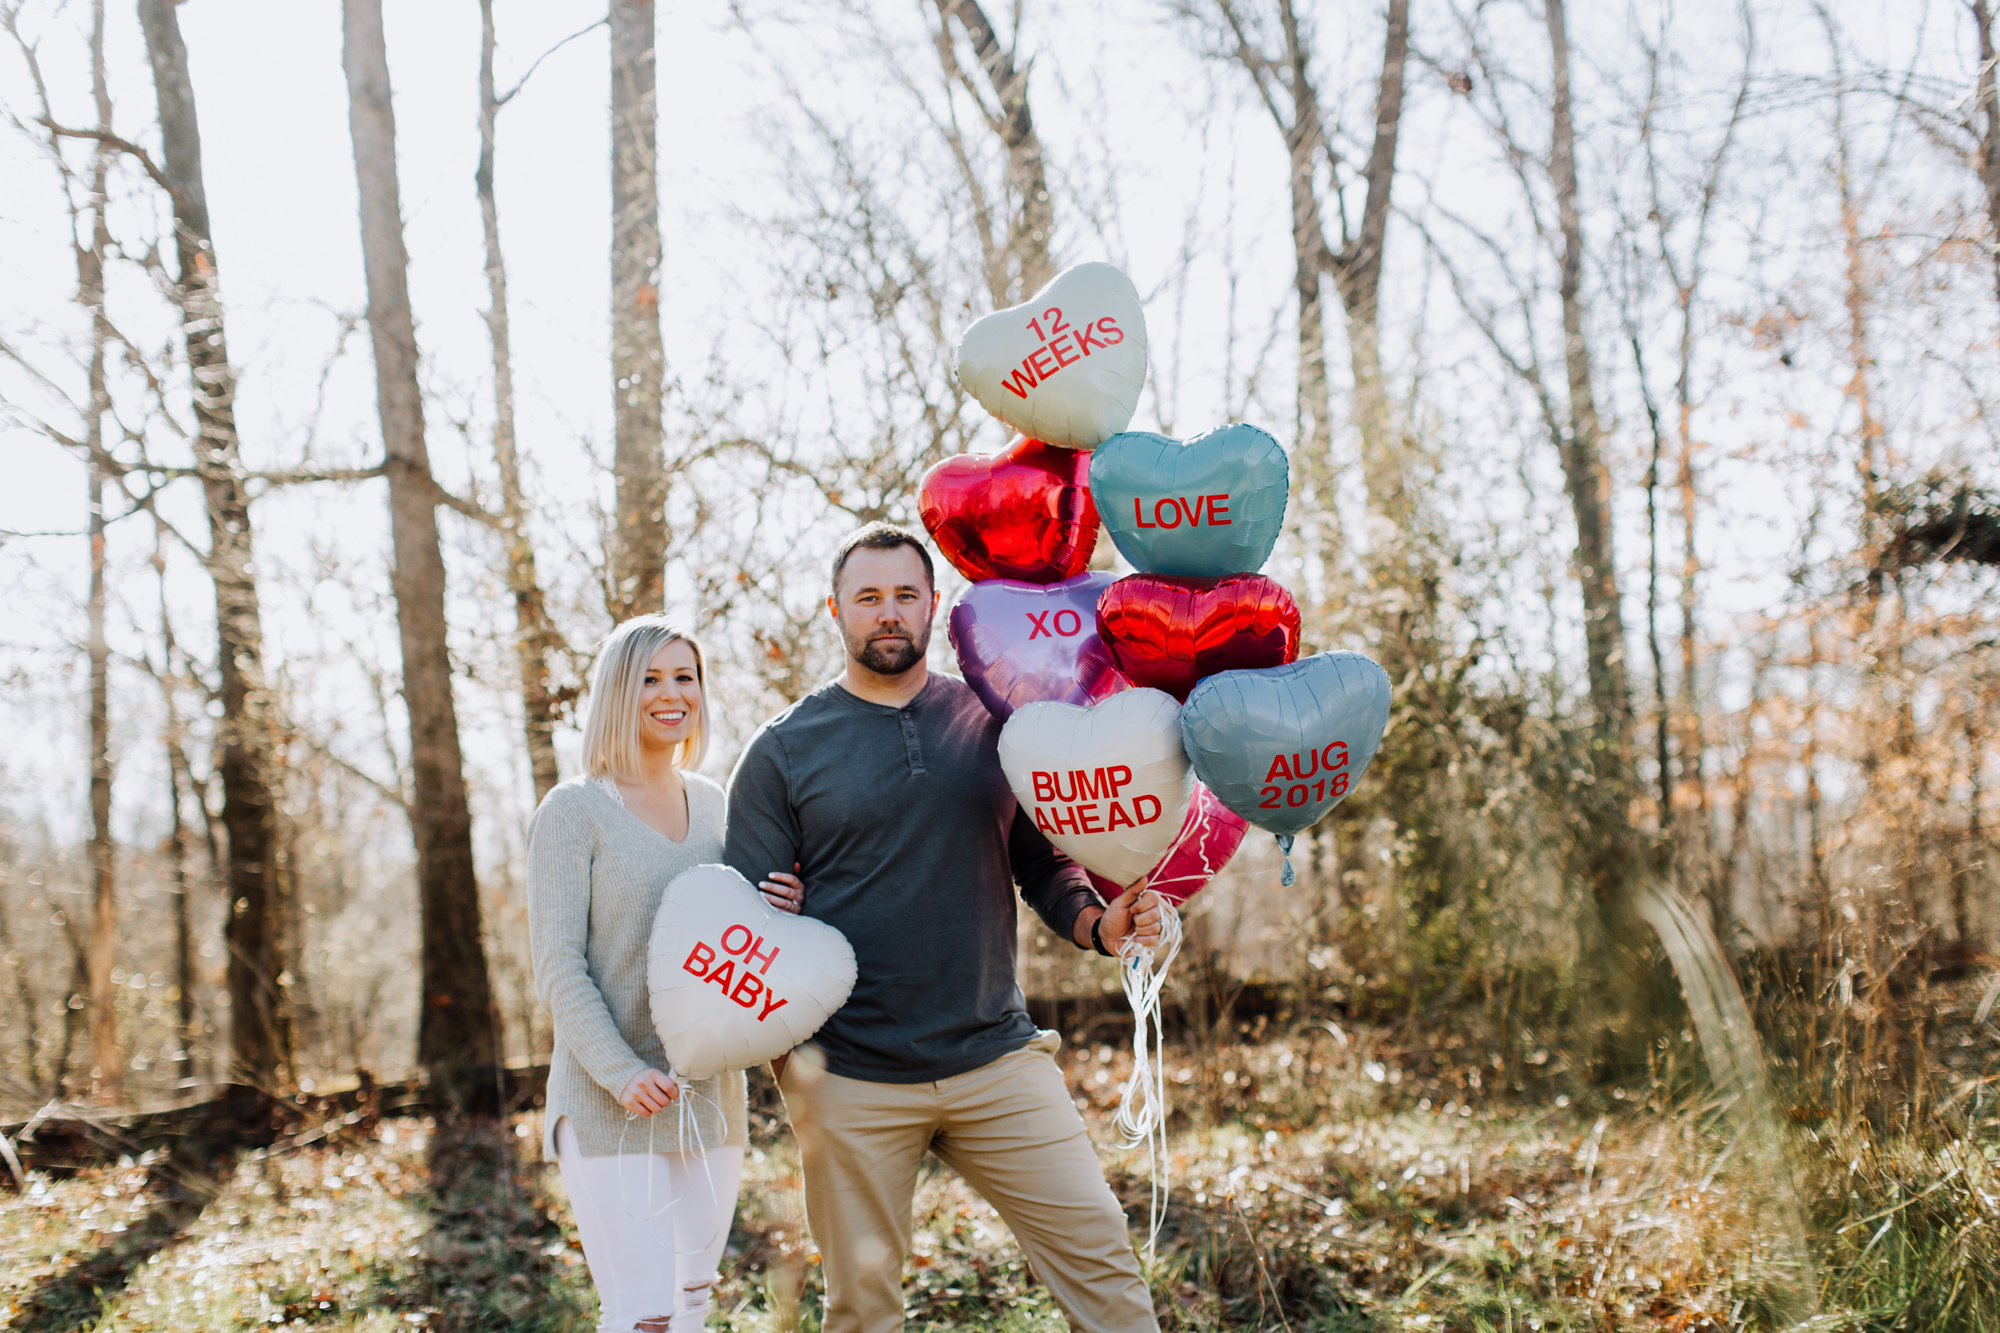 003-pregnancy-announcement-with-balloons.jpg